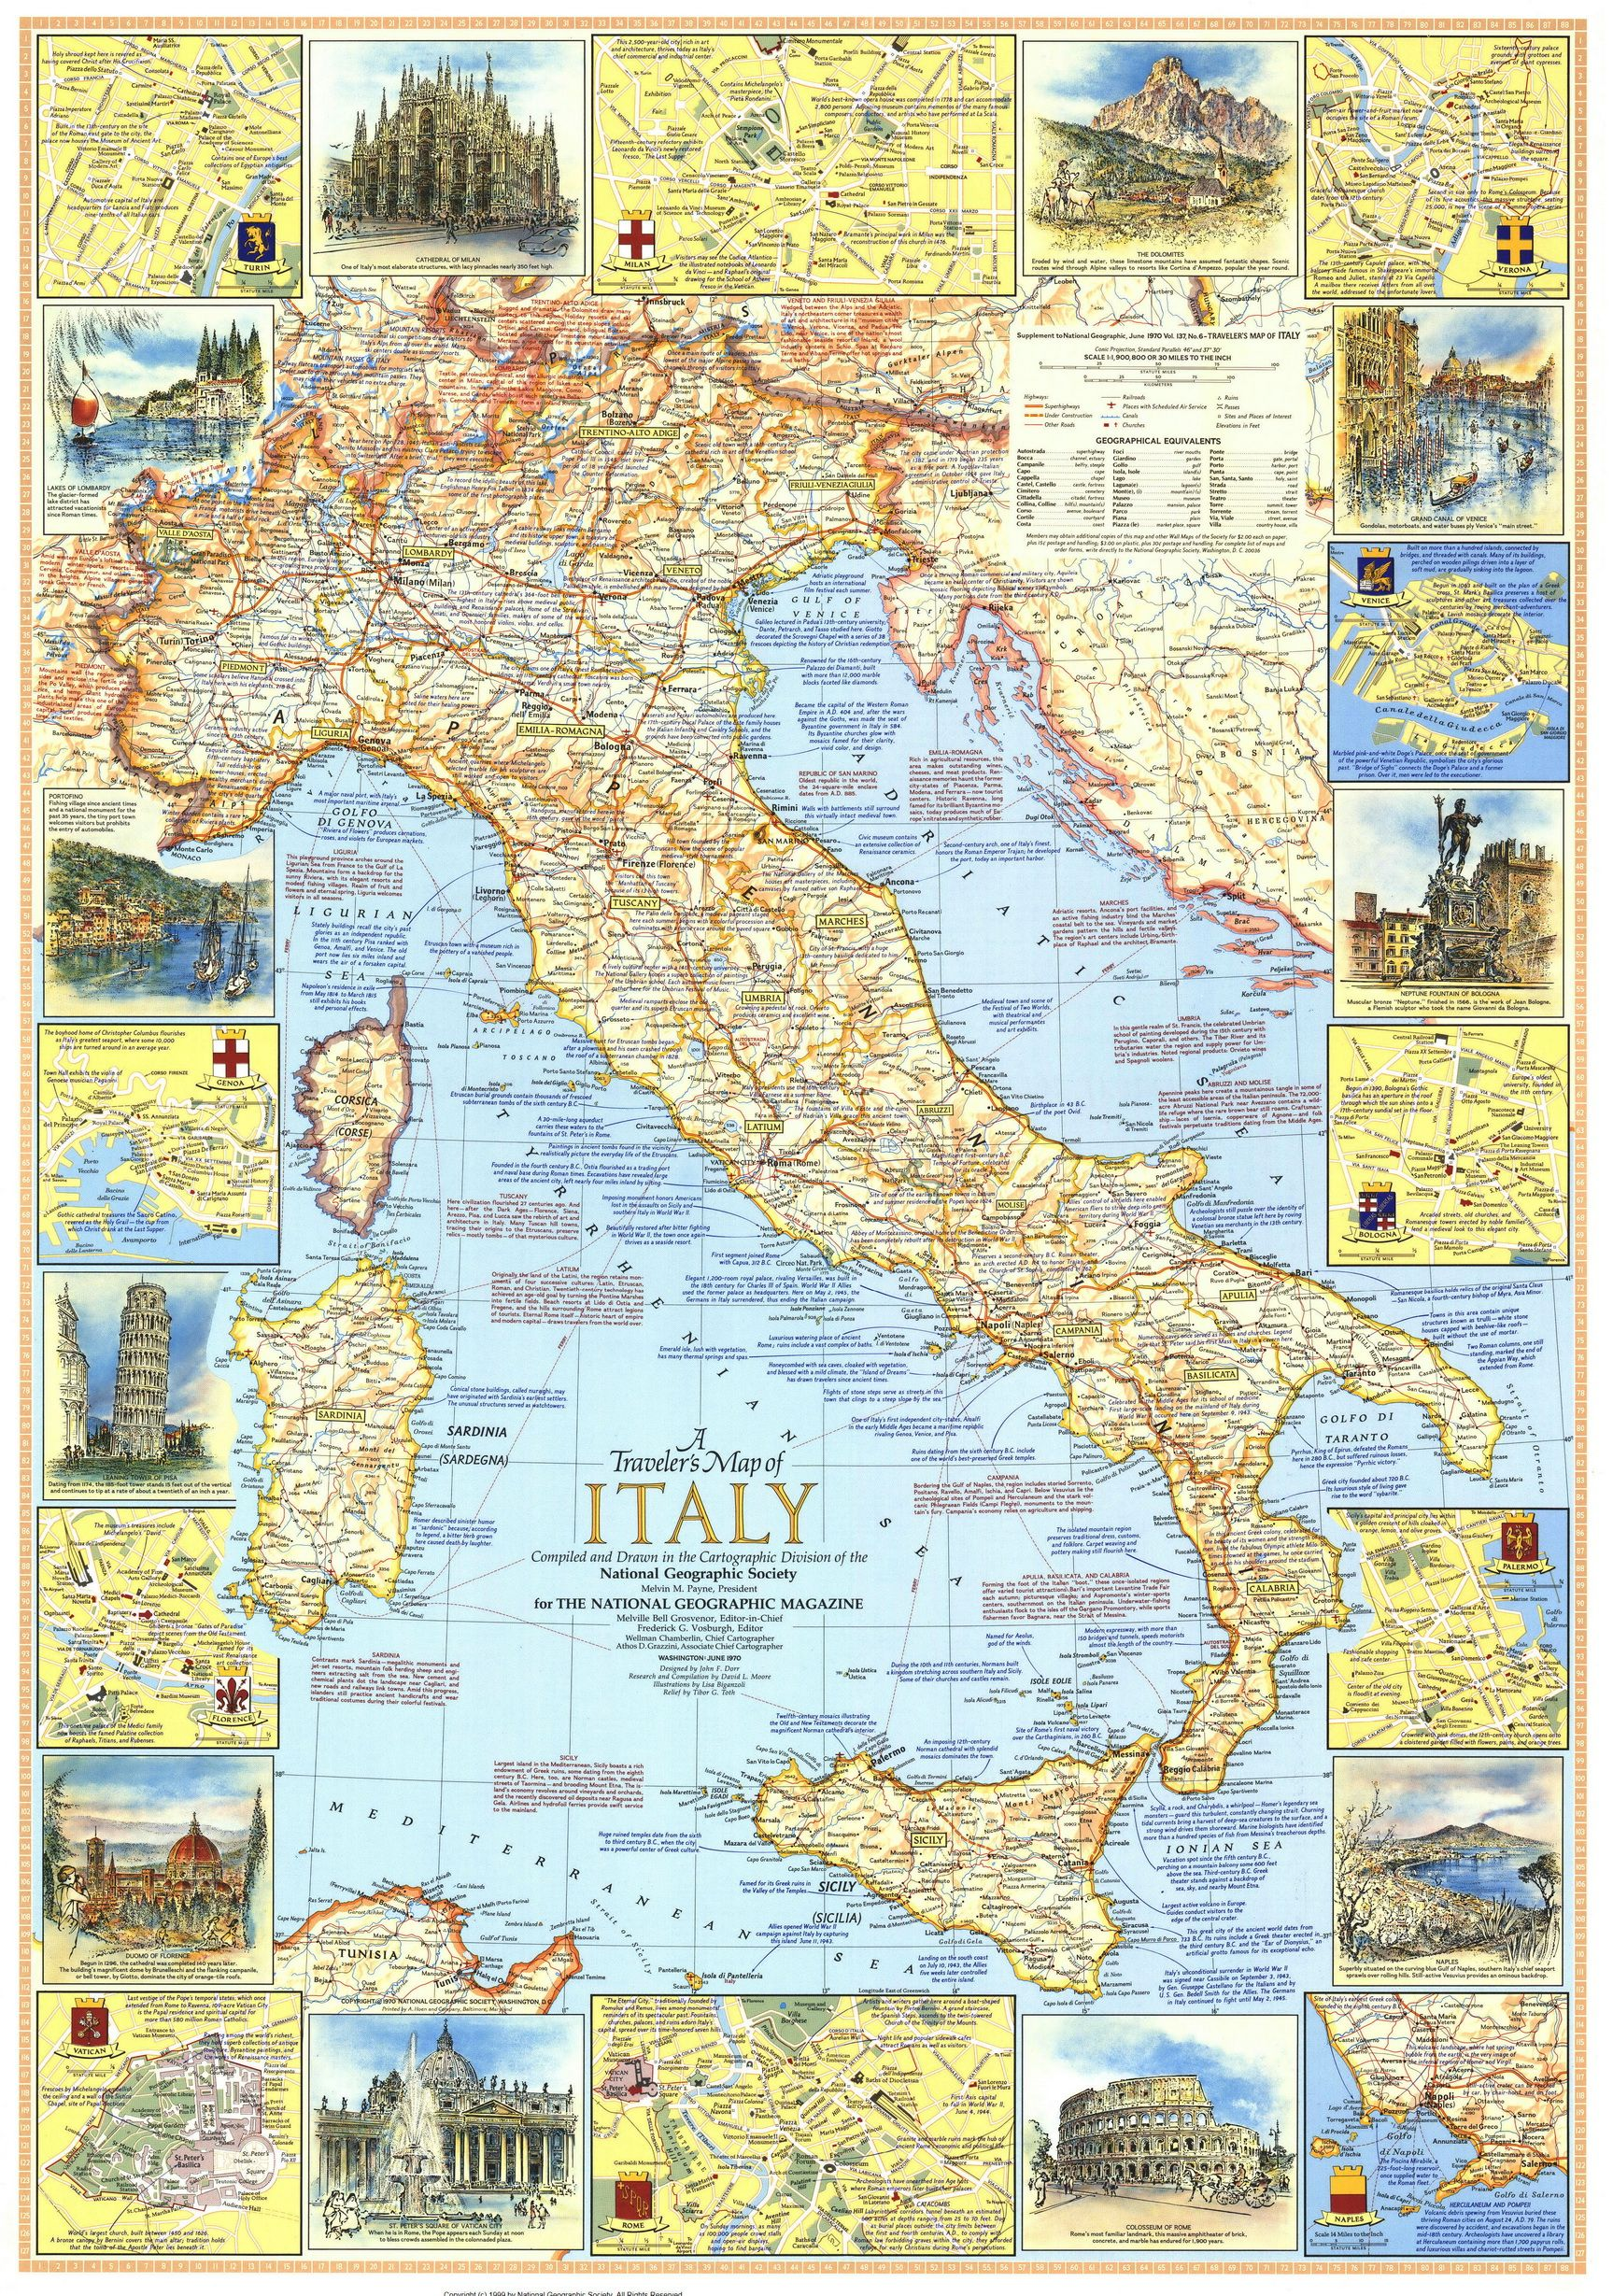 Italy A Traveller S Map 1970 Italy Wall Art National Geographic Maps Map Of Italy Regions